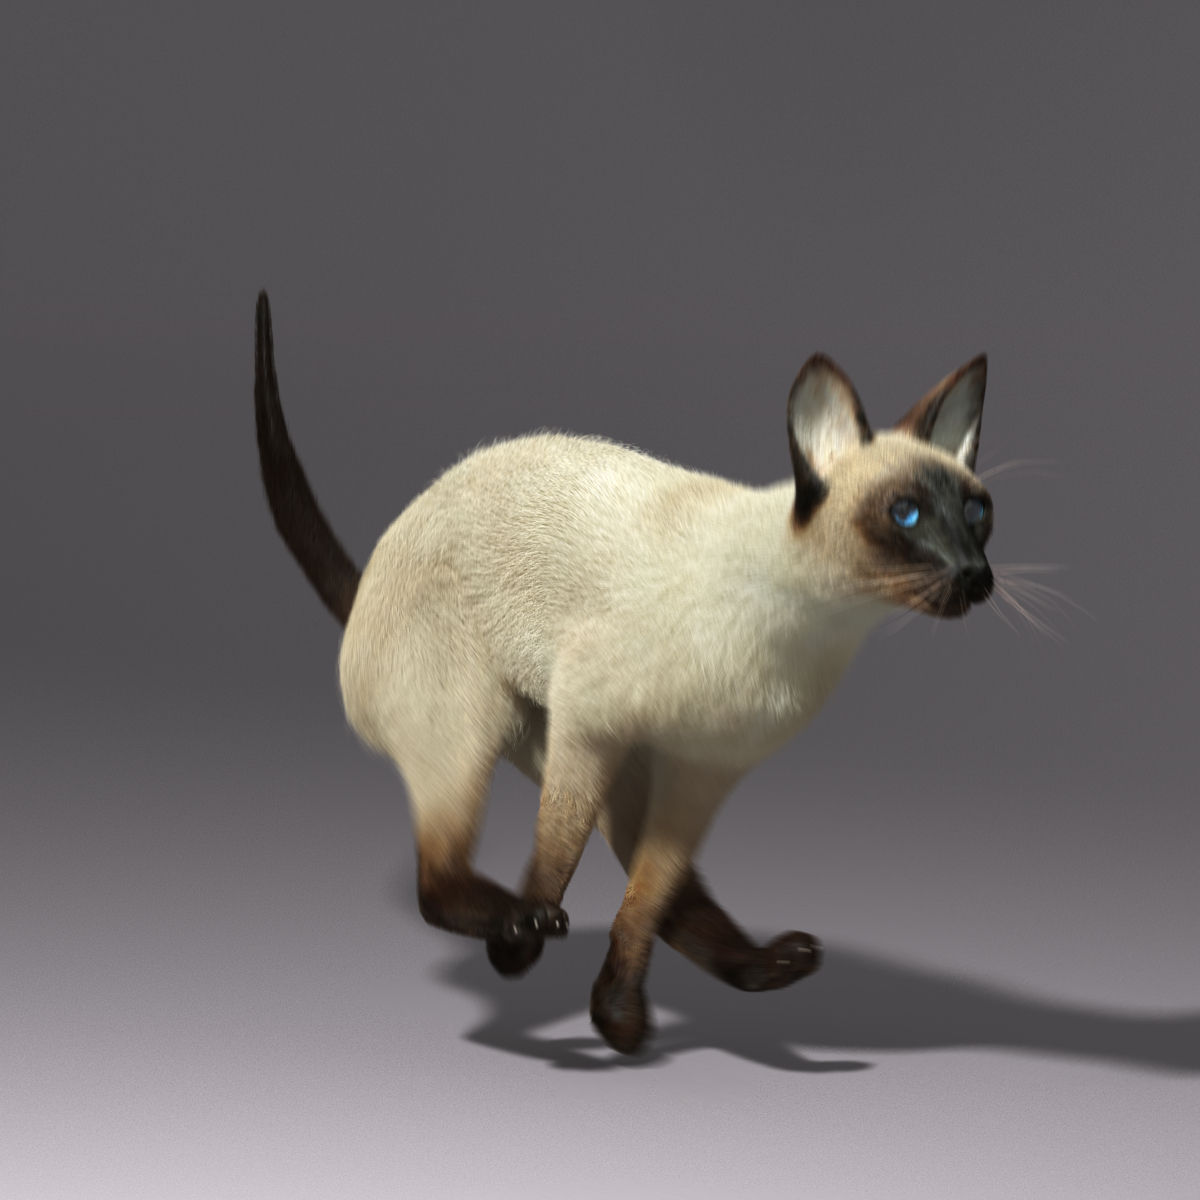 siamese cat 3d model - photo #44